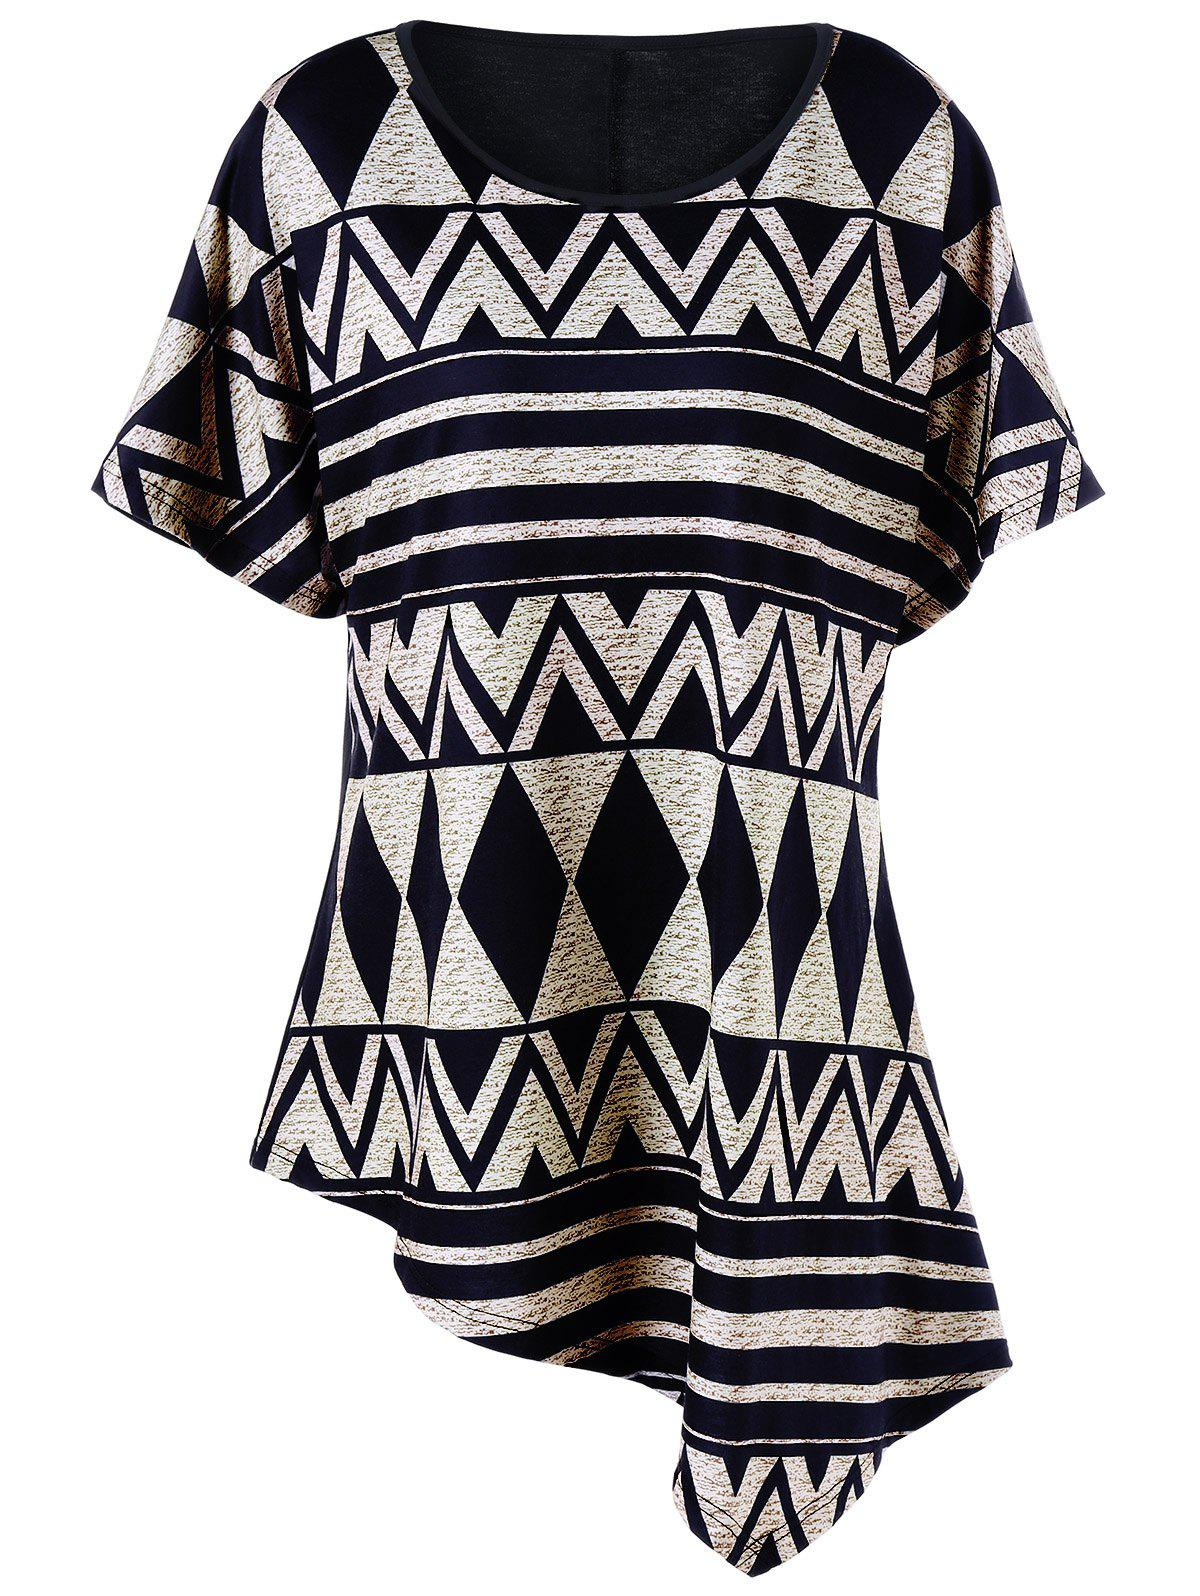 Plus Size Batwing Sleeve Geometric Asymmetrical T-Shirt - BLACK XL